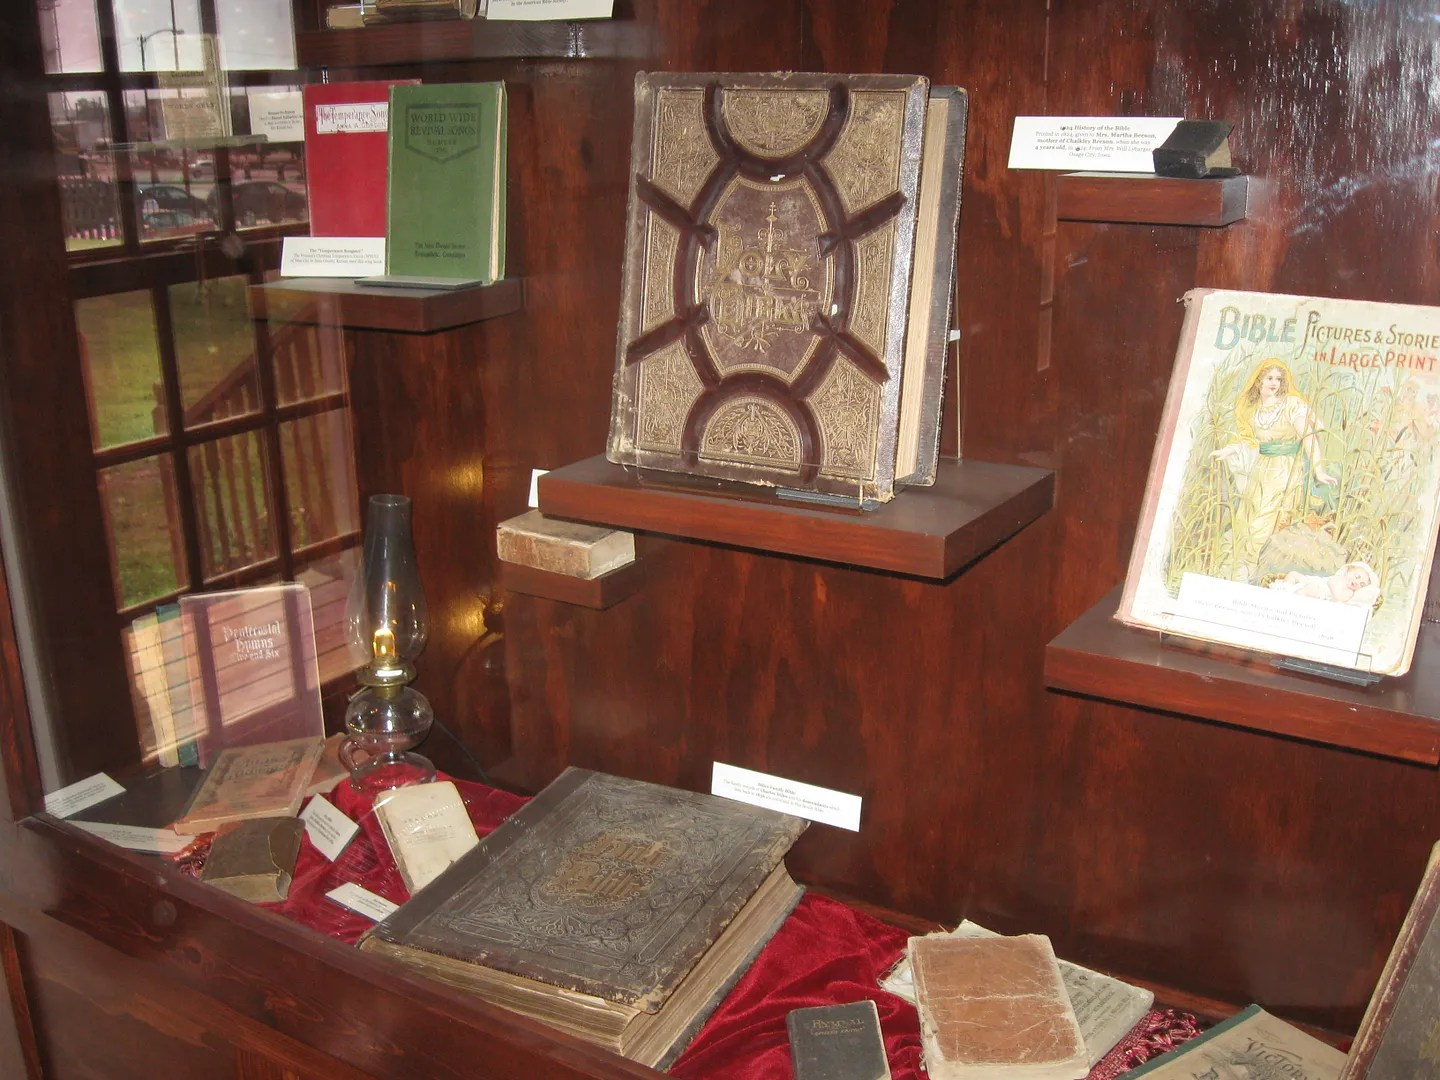 Bibles, Boot Hill Museum, Dodge City, Kansas